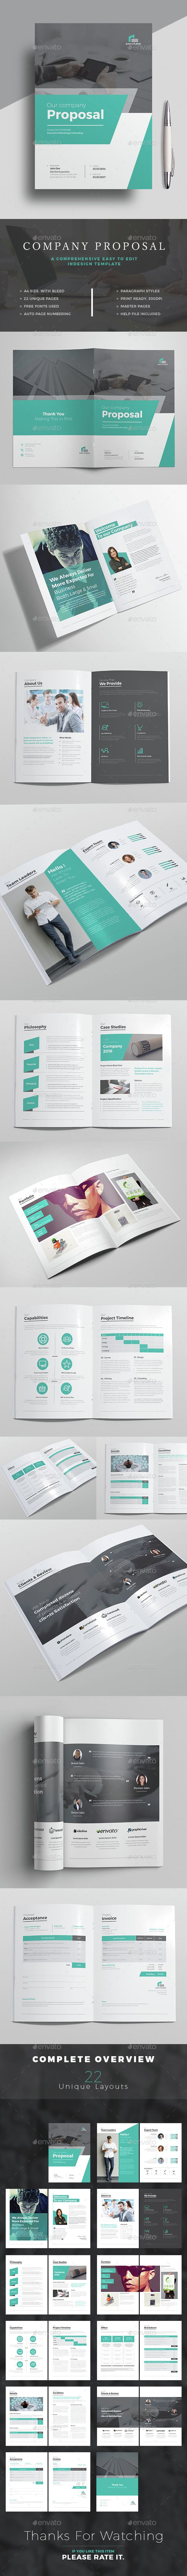 Proposal Template - #Proposals & Invoices Stationery Download here: https://graphicriver.net/item/proposal-template/15226494?reff=classicdesignp